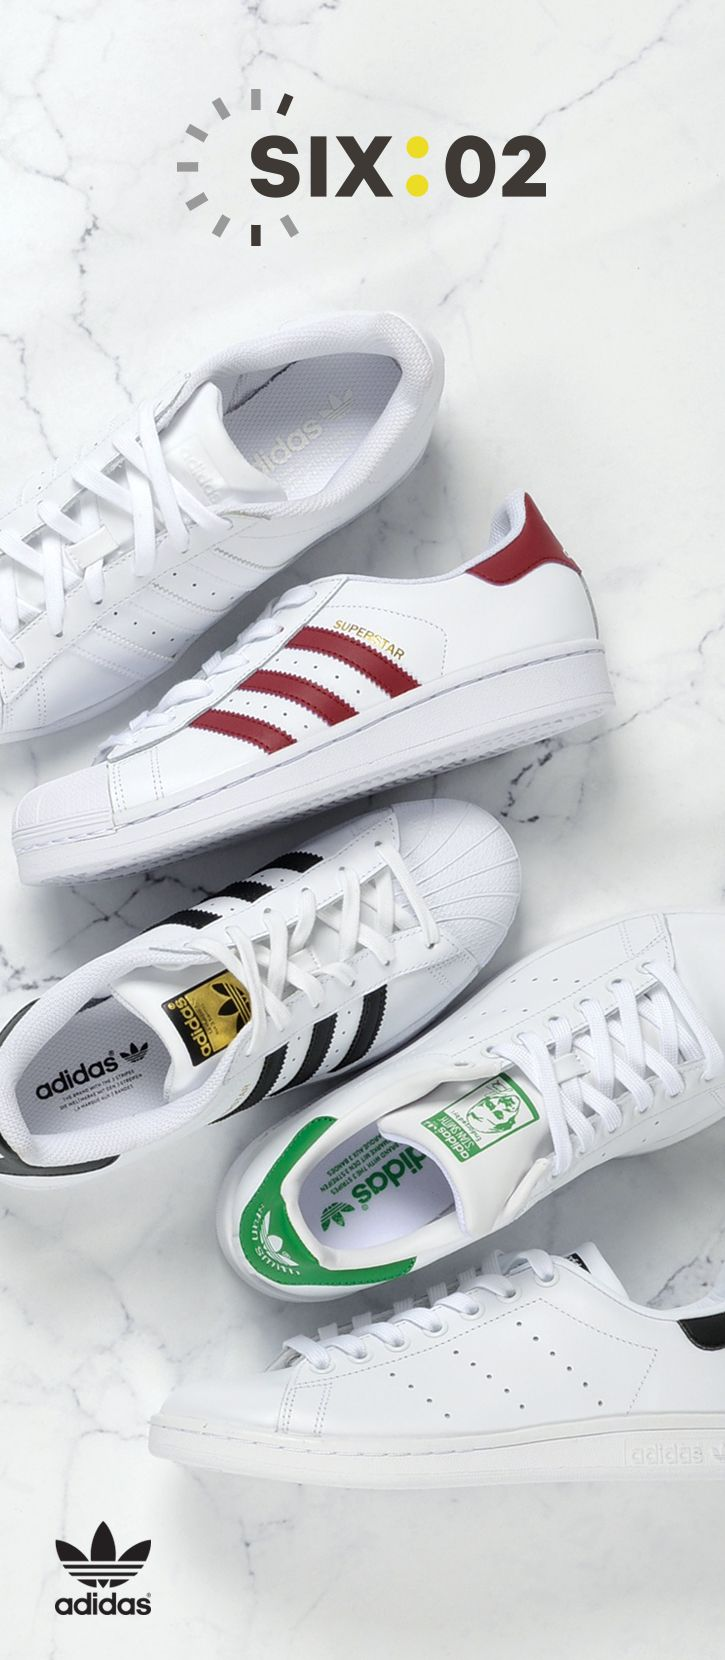 lowest price 320b7 a637a Always sporting the 3 stripes. Pick up the latest adidas Originals styles  now at at SIX02!